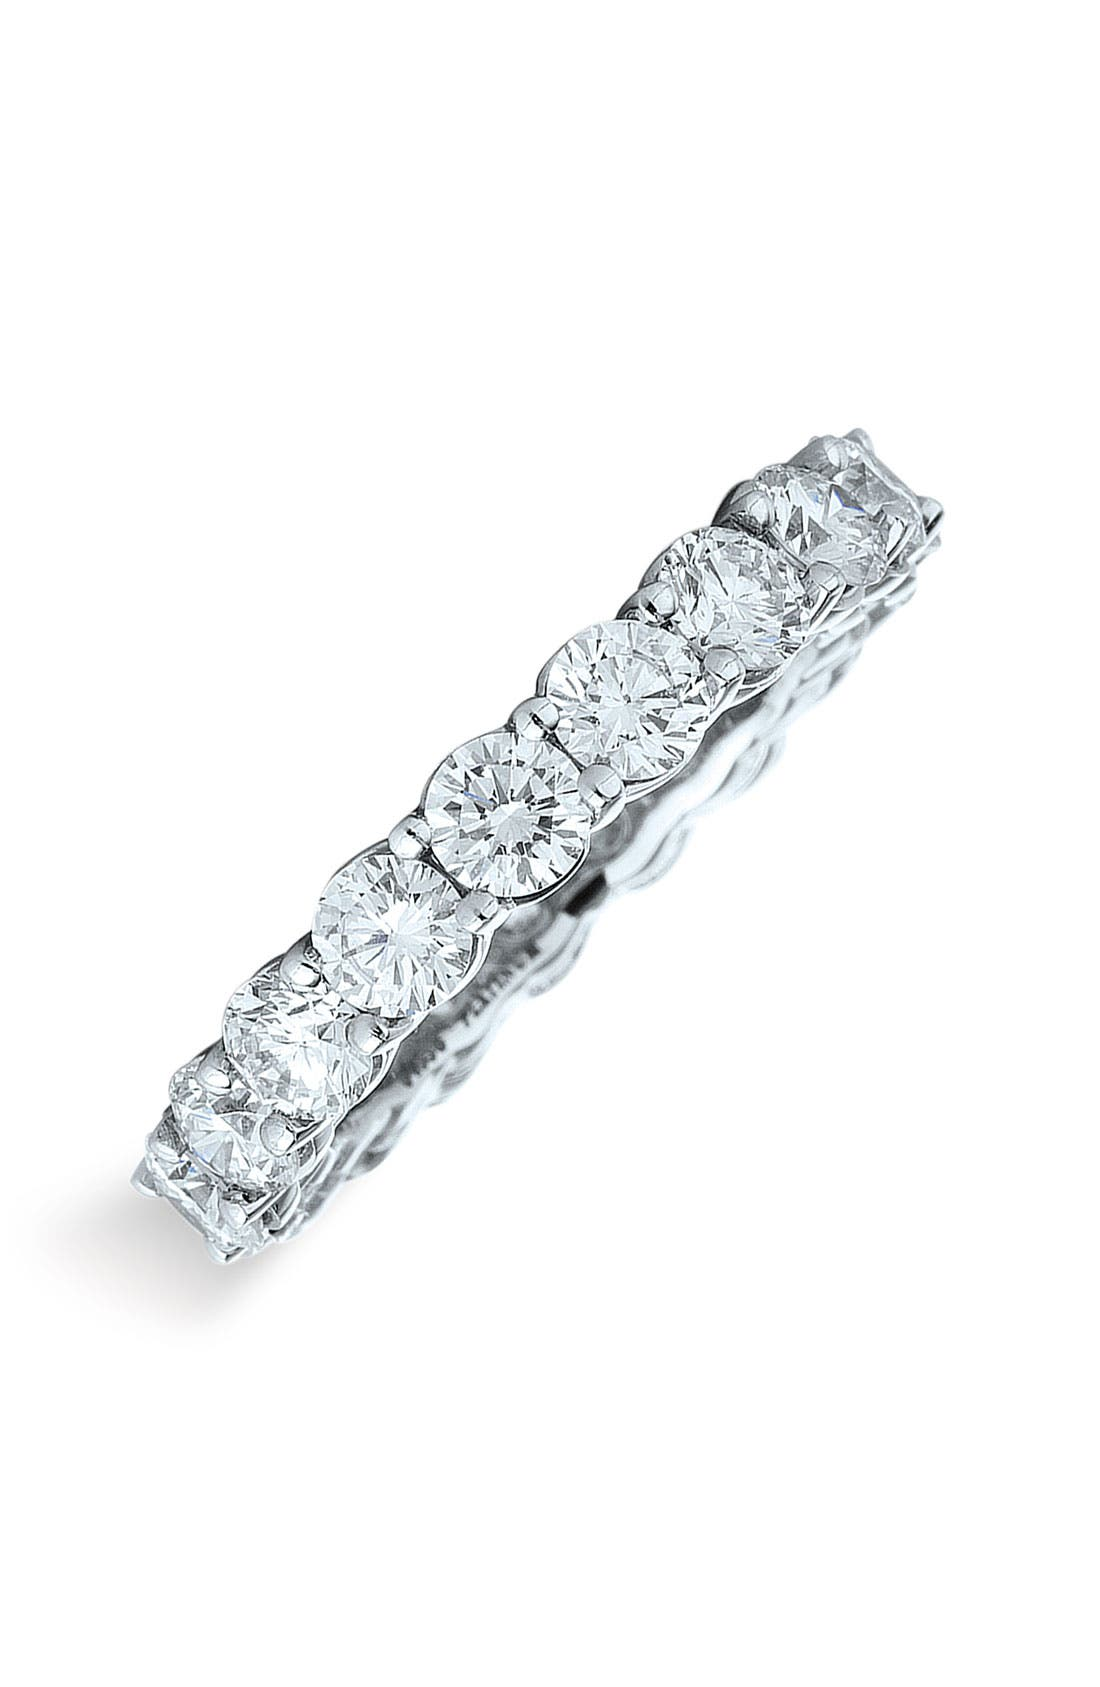 Main Image - Kwiat Diamond Ring